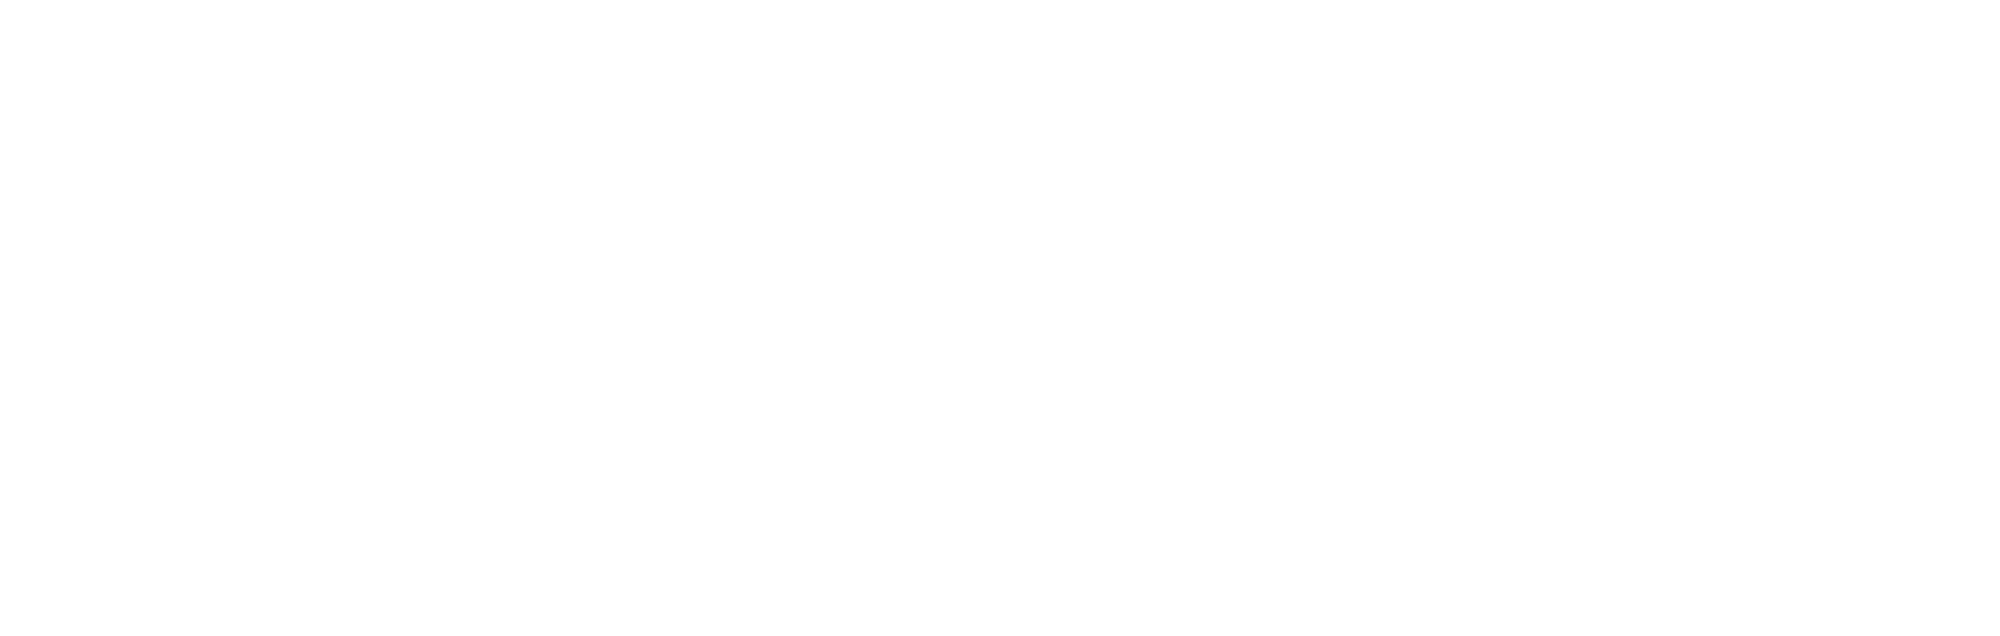 Professional Drone Pilot-logo-white.png